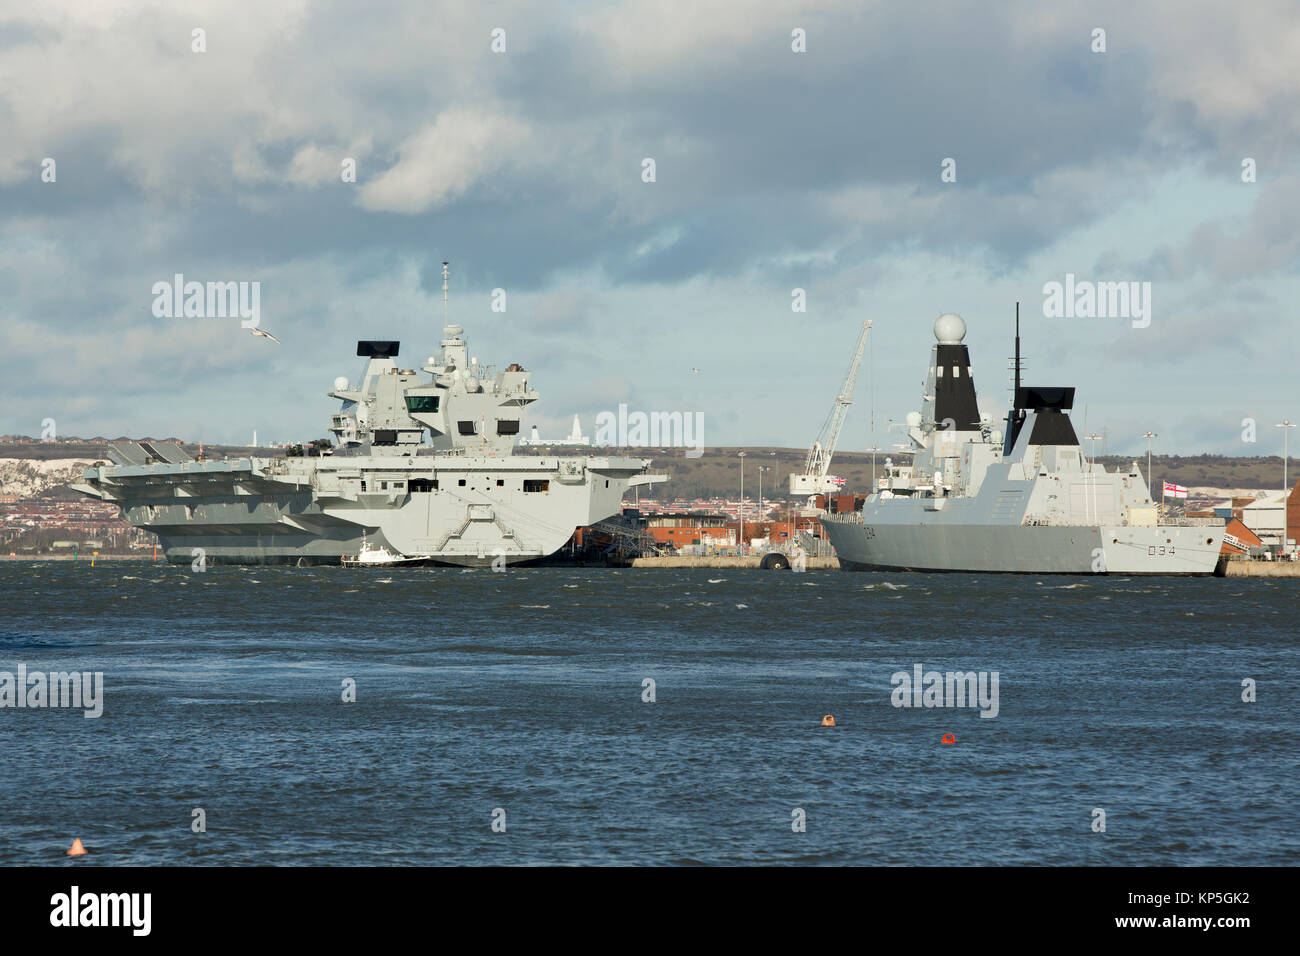 Royal Naval ships alongside in HMNB Portsmouth. Aircraft carrier HMS Queen Elizabeth and Destroyer HMS Diamond seen - Stock Image